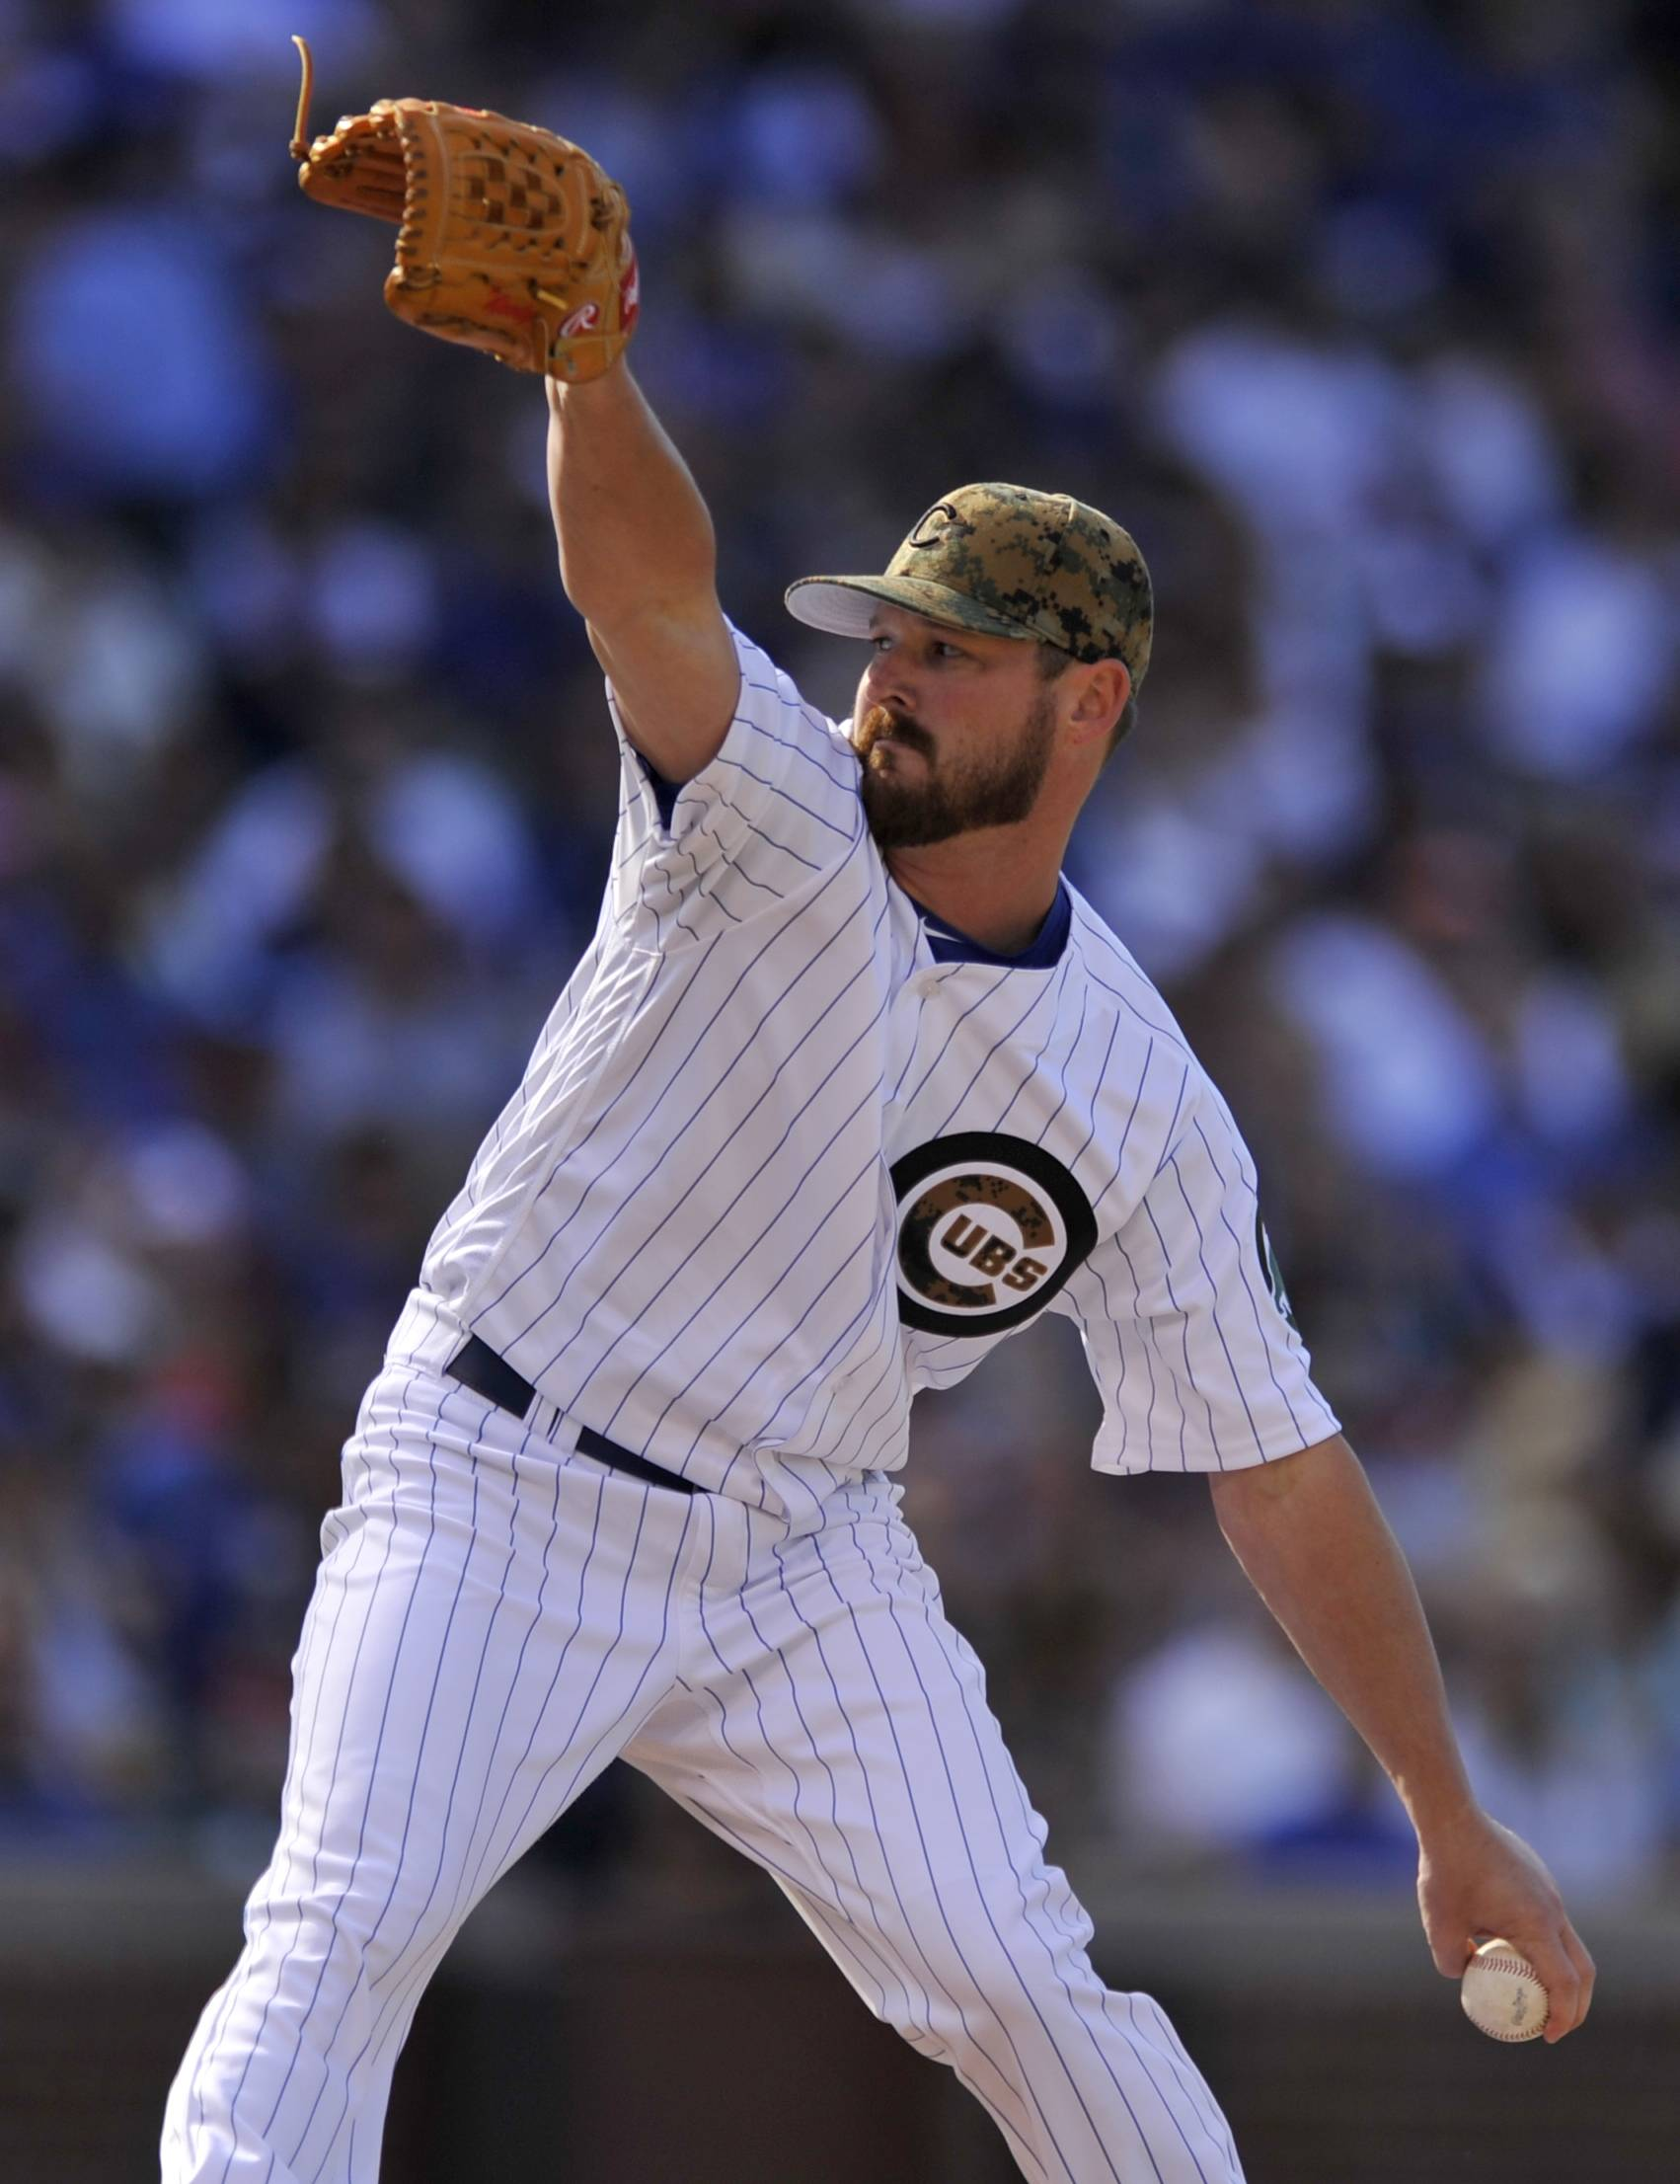 Chicago Cubs relief pitcher Travis Wood delivers a pitch during the third inning of a baseball game against the Los Angeles Dodgers on Monday, May 30, 2016, in Chicago. Chicago won 2-0. (AP Photo/Paul Beaty)